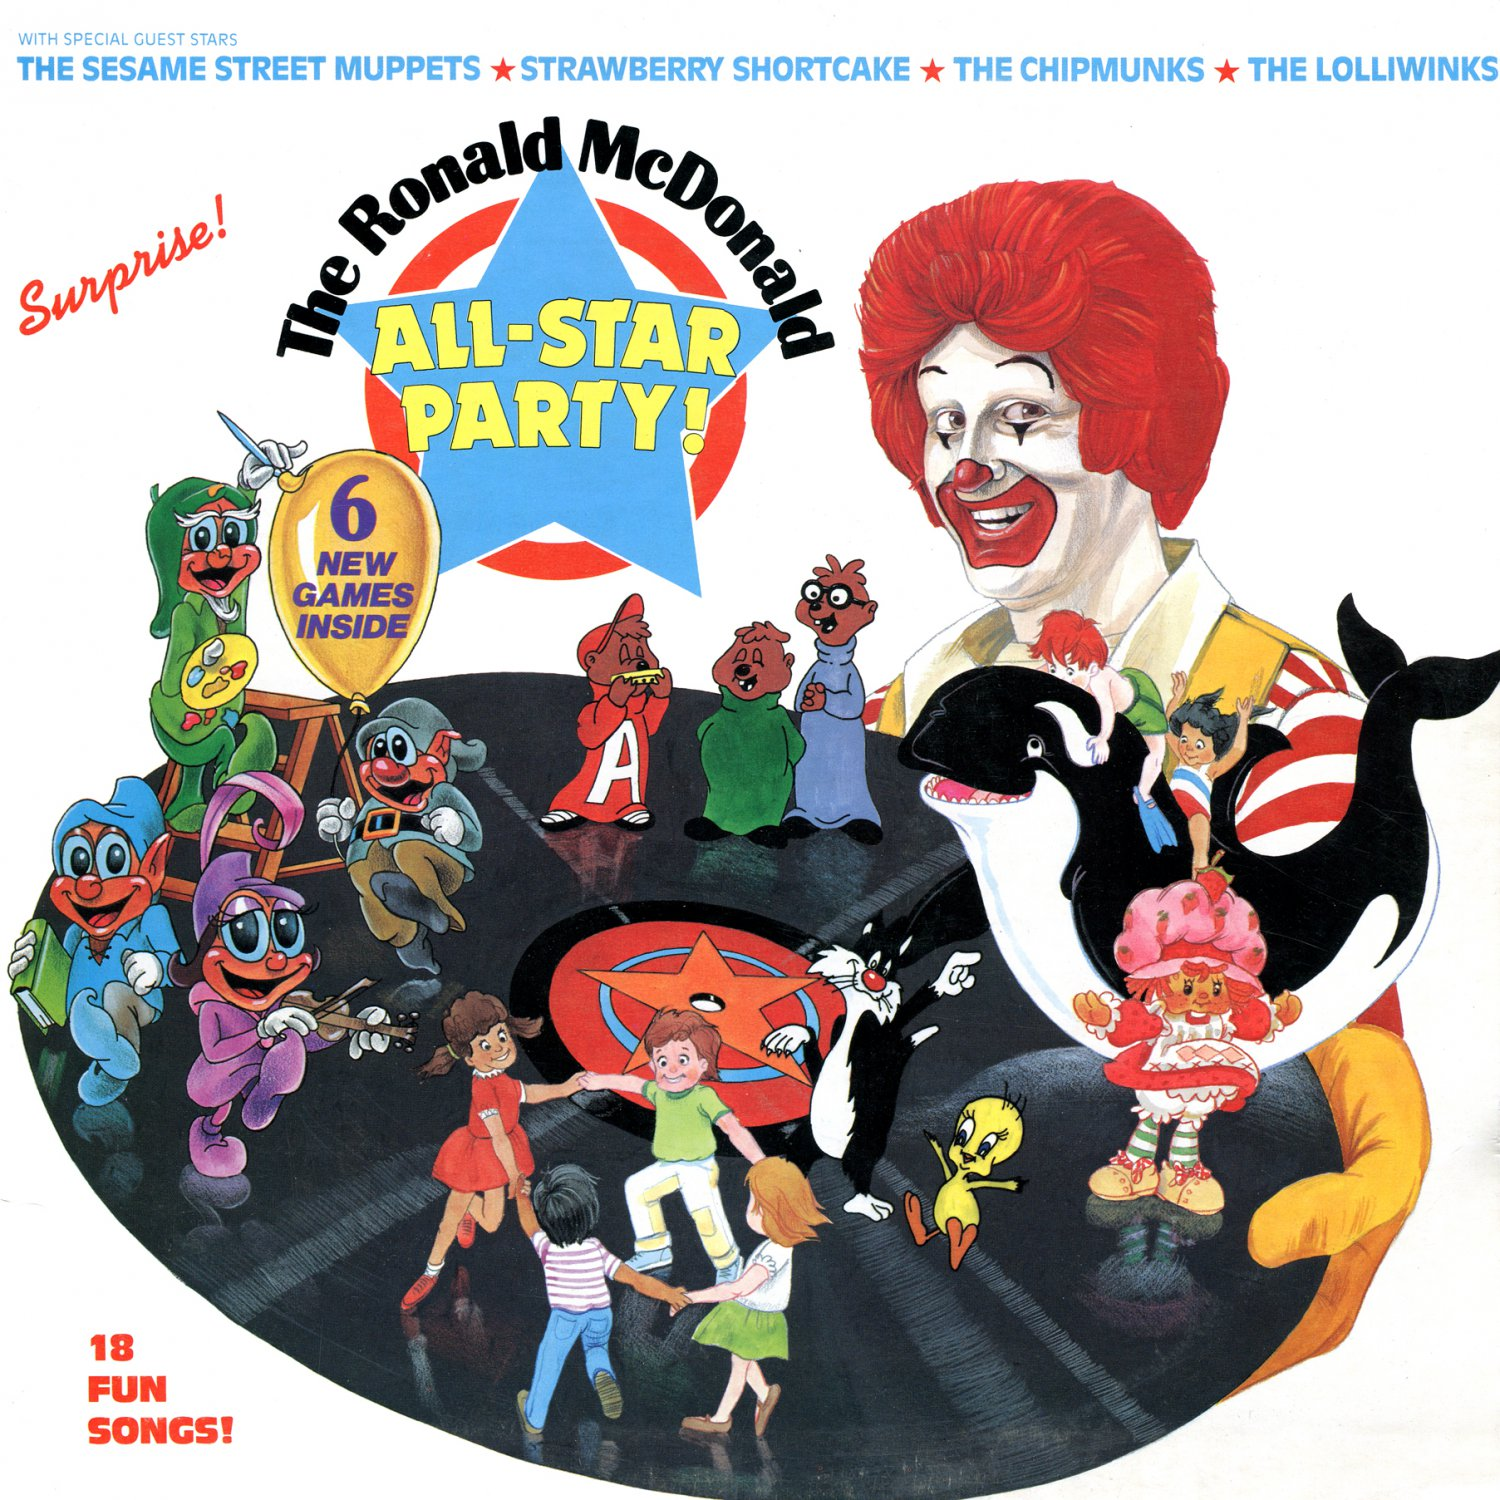 The Ronald McDonald All-Star Party (1982) - Original Soundtrack, Muppets & Chipmunks LP/CD